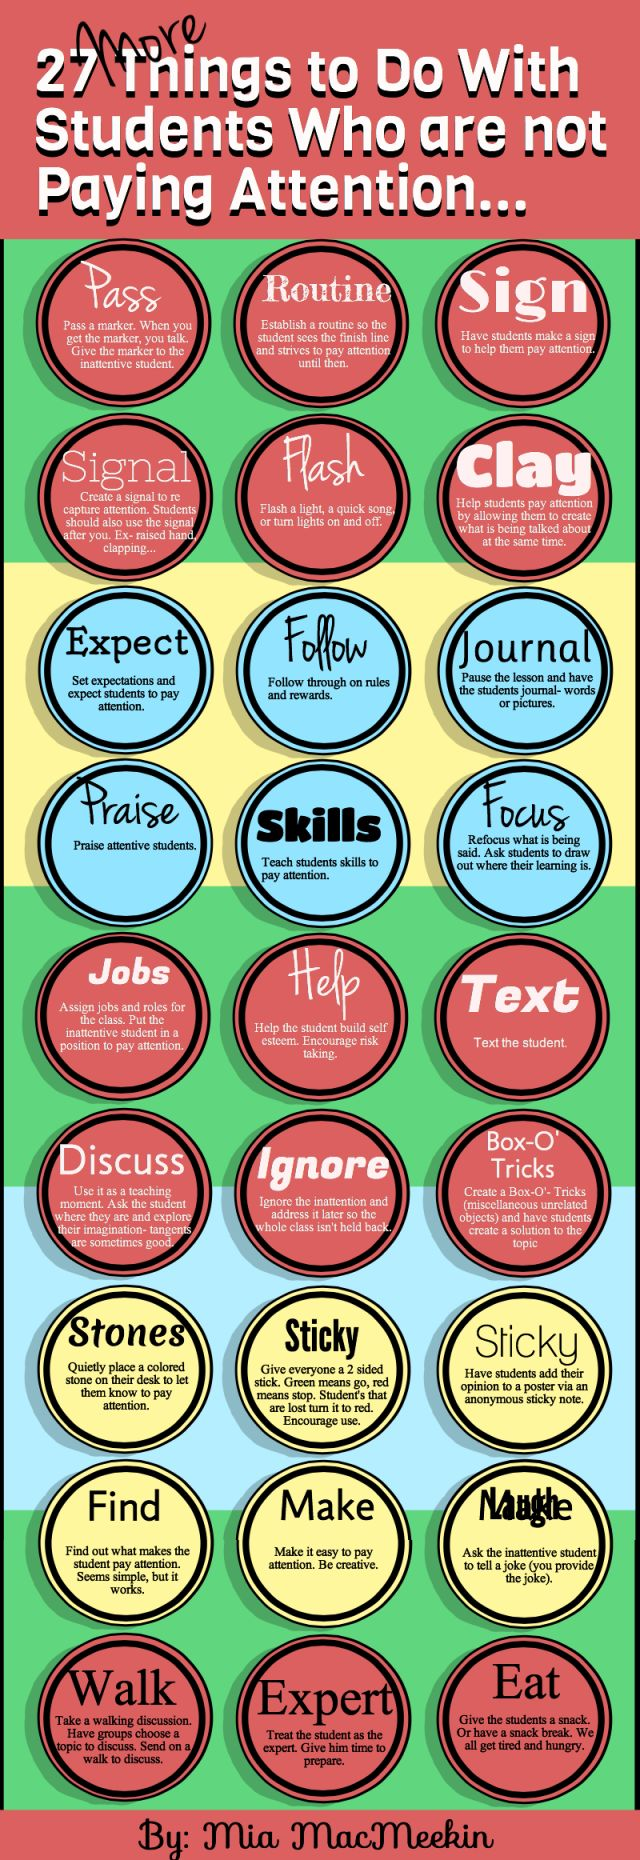 27 more things to do with students who are not paying attention.